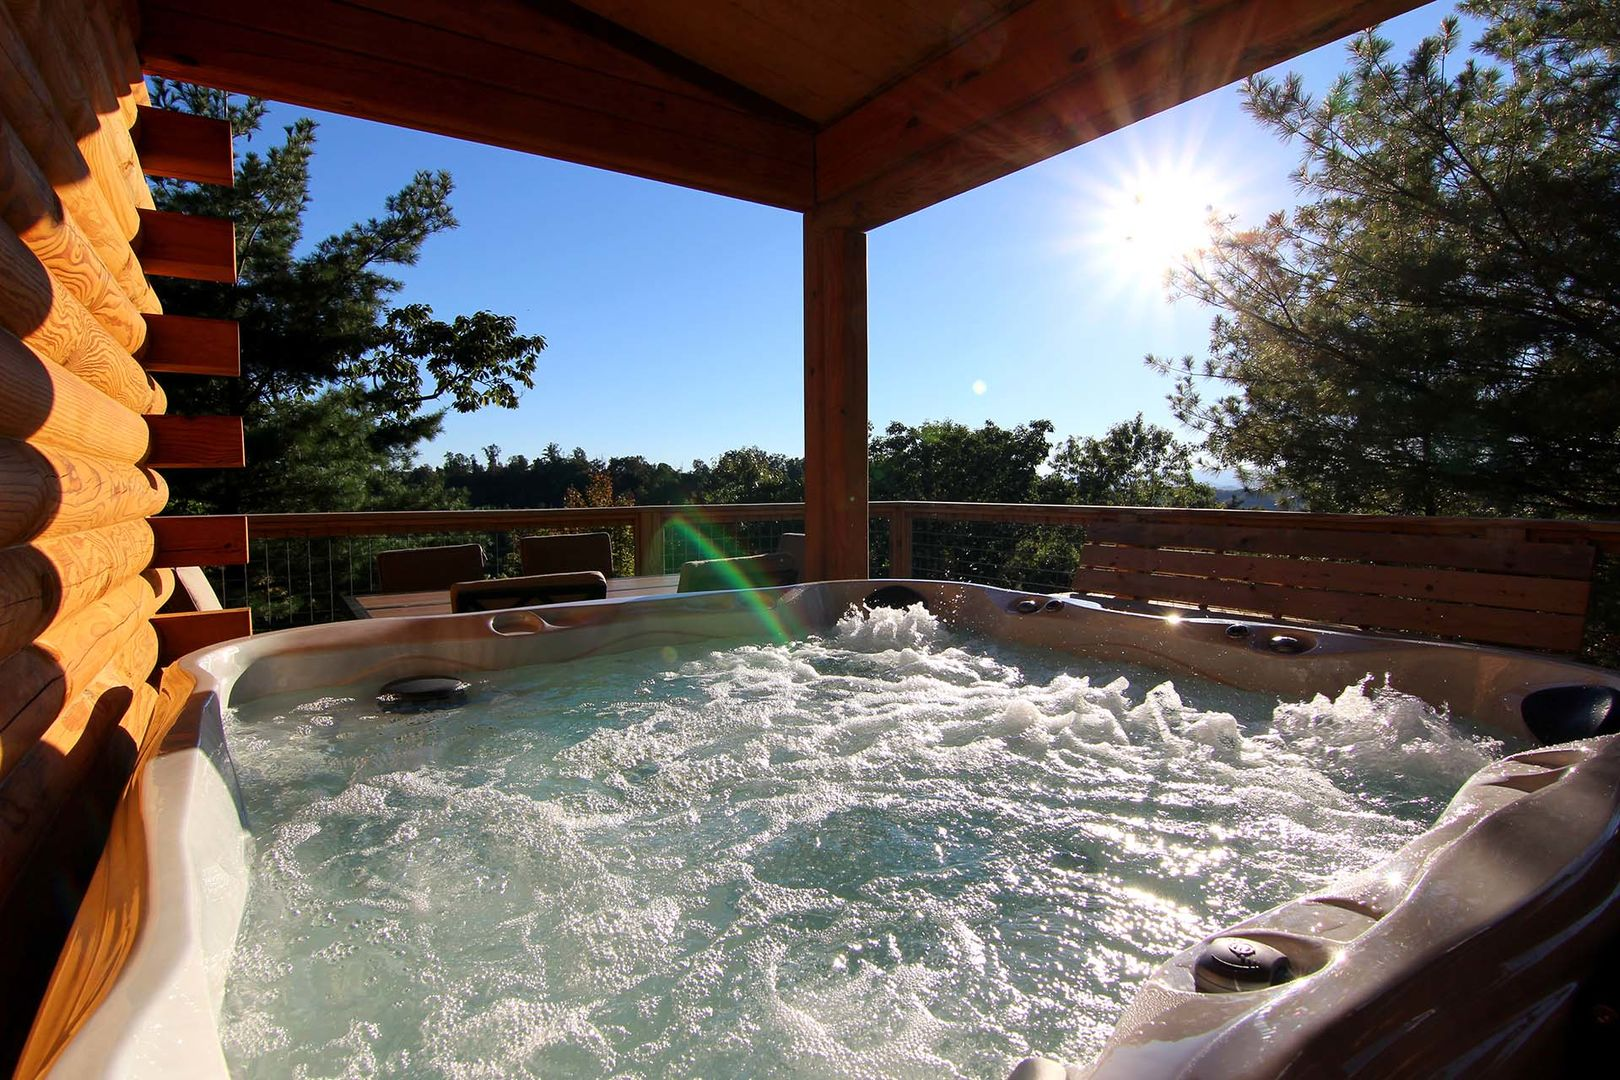 Enjoy soaking in the hot tub after a long day of hiking!